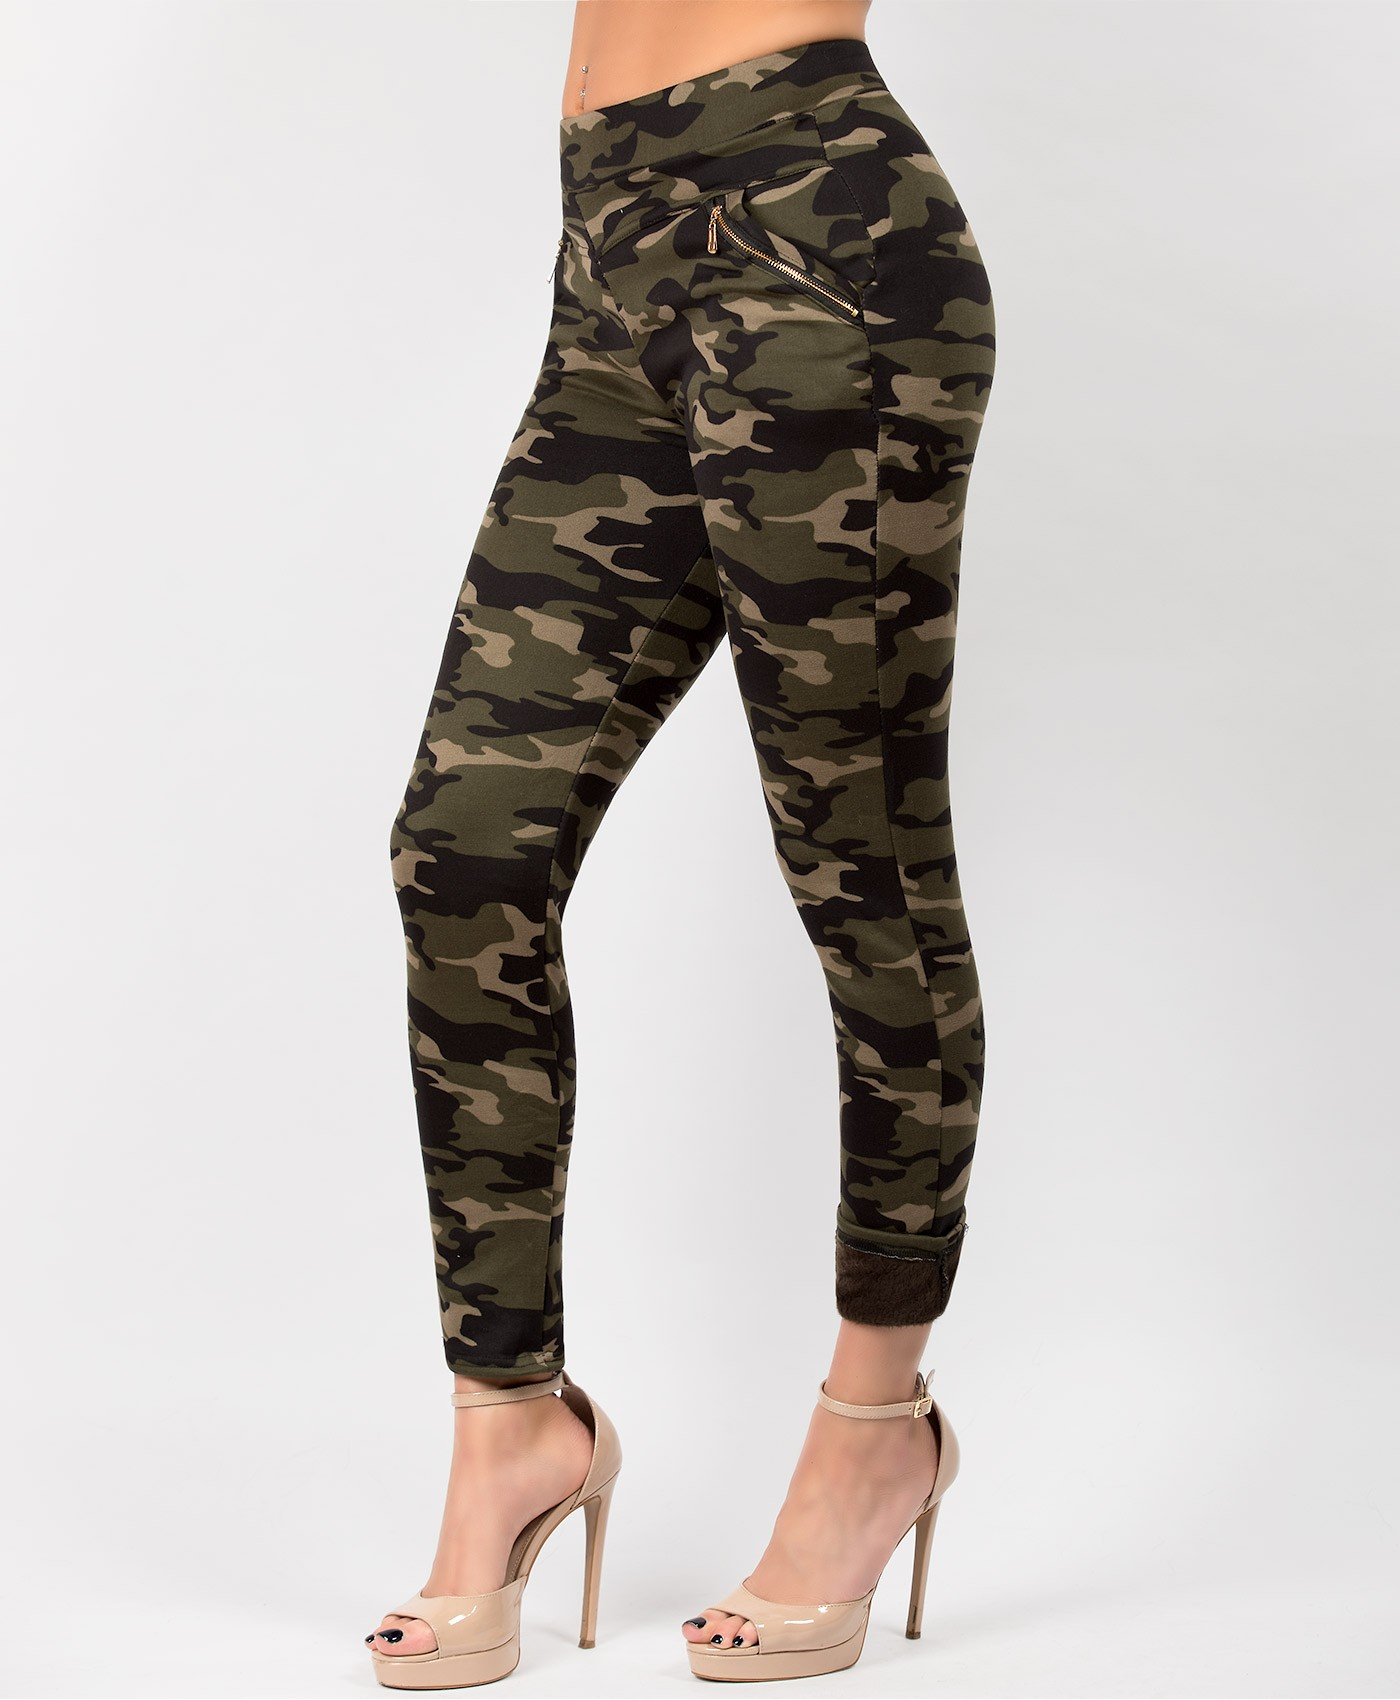 Khaki-Fur-Lined-Gold-Zip--Camouflage-Leggings-3